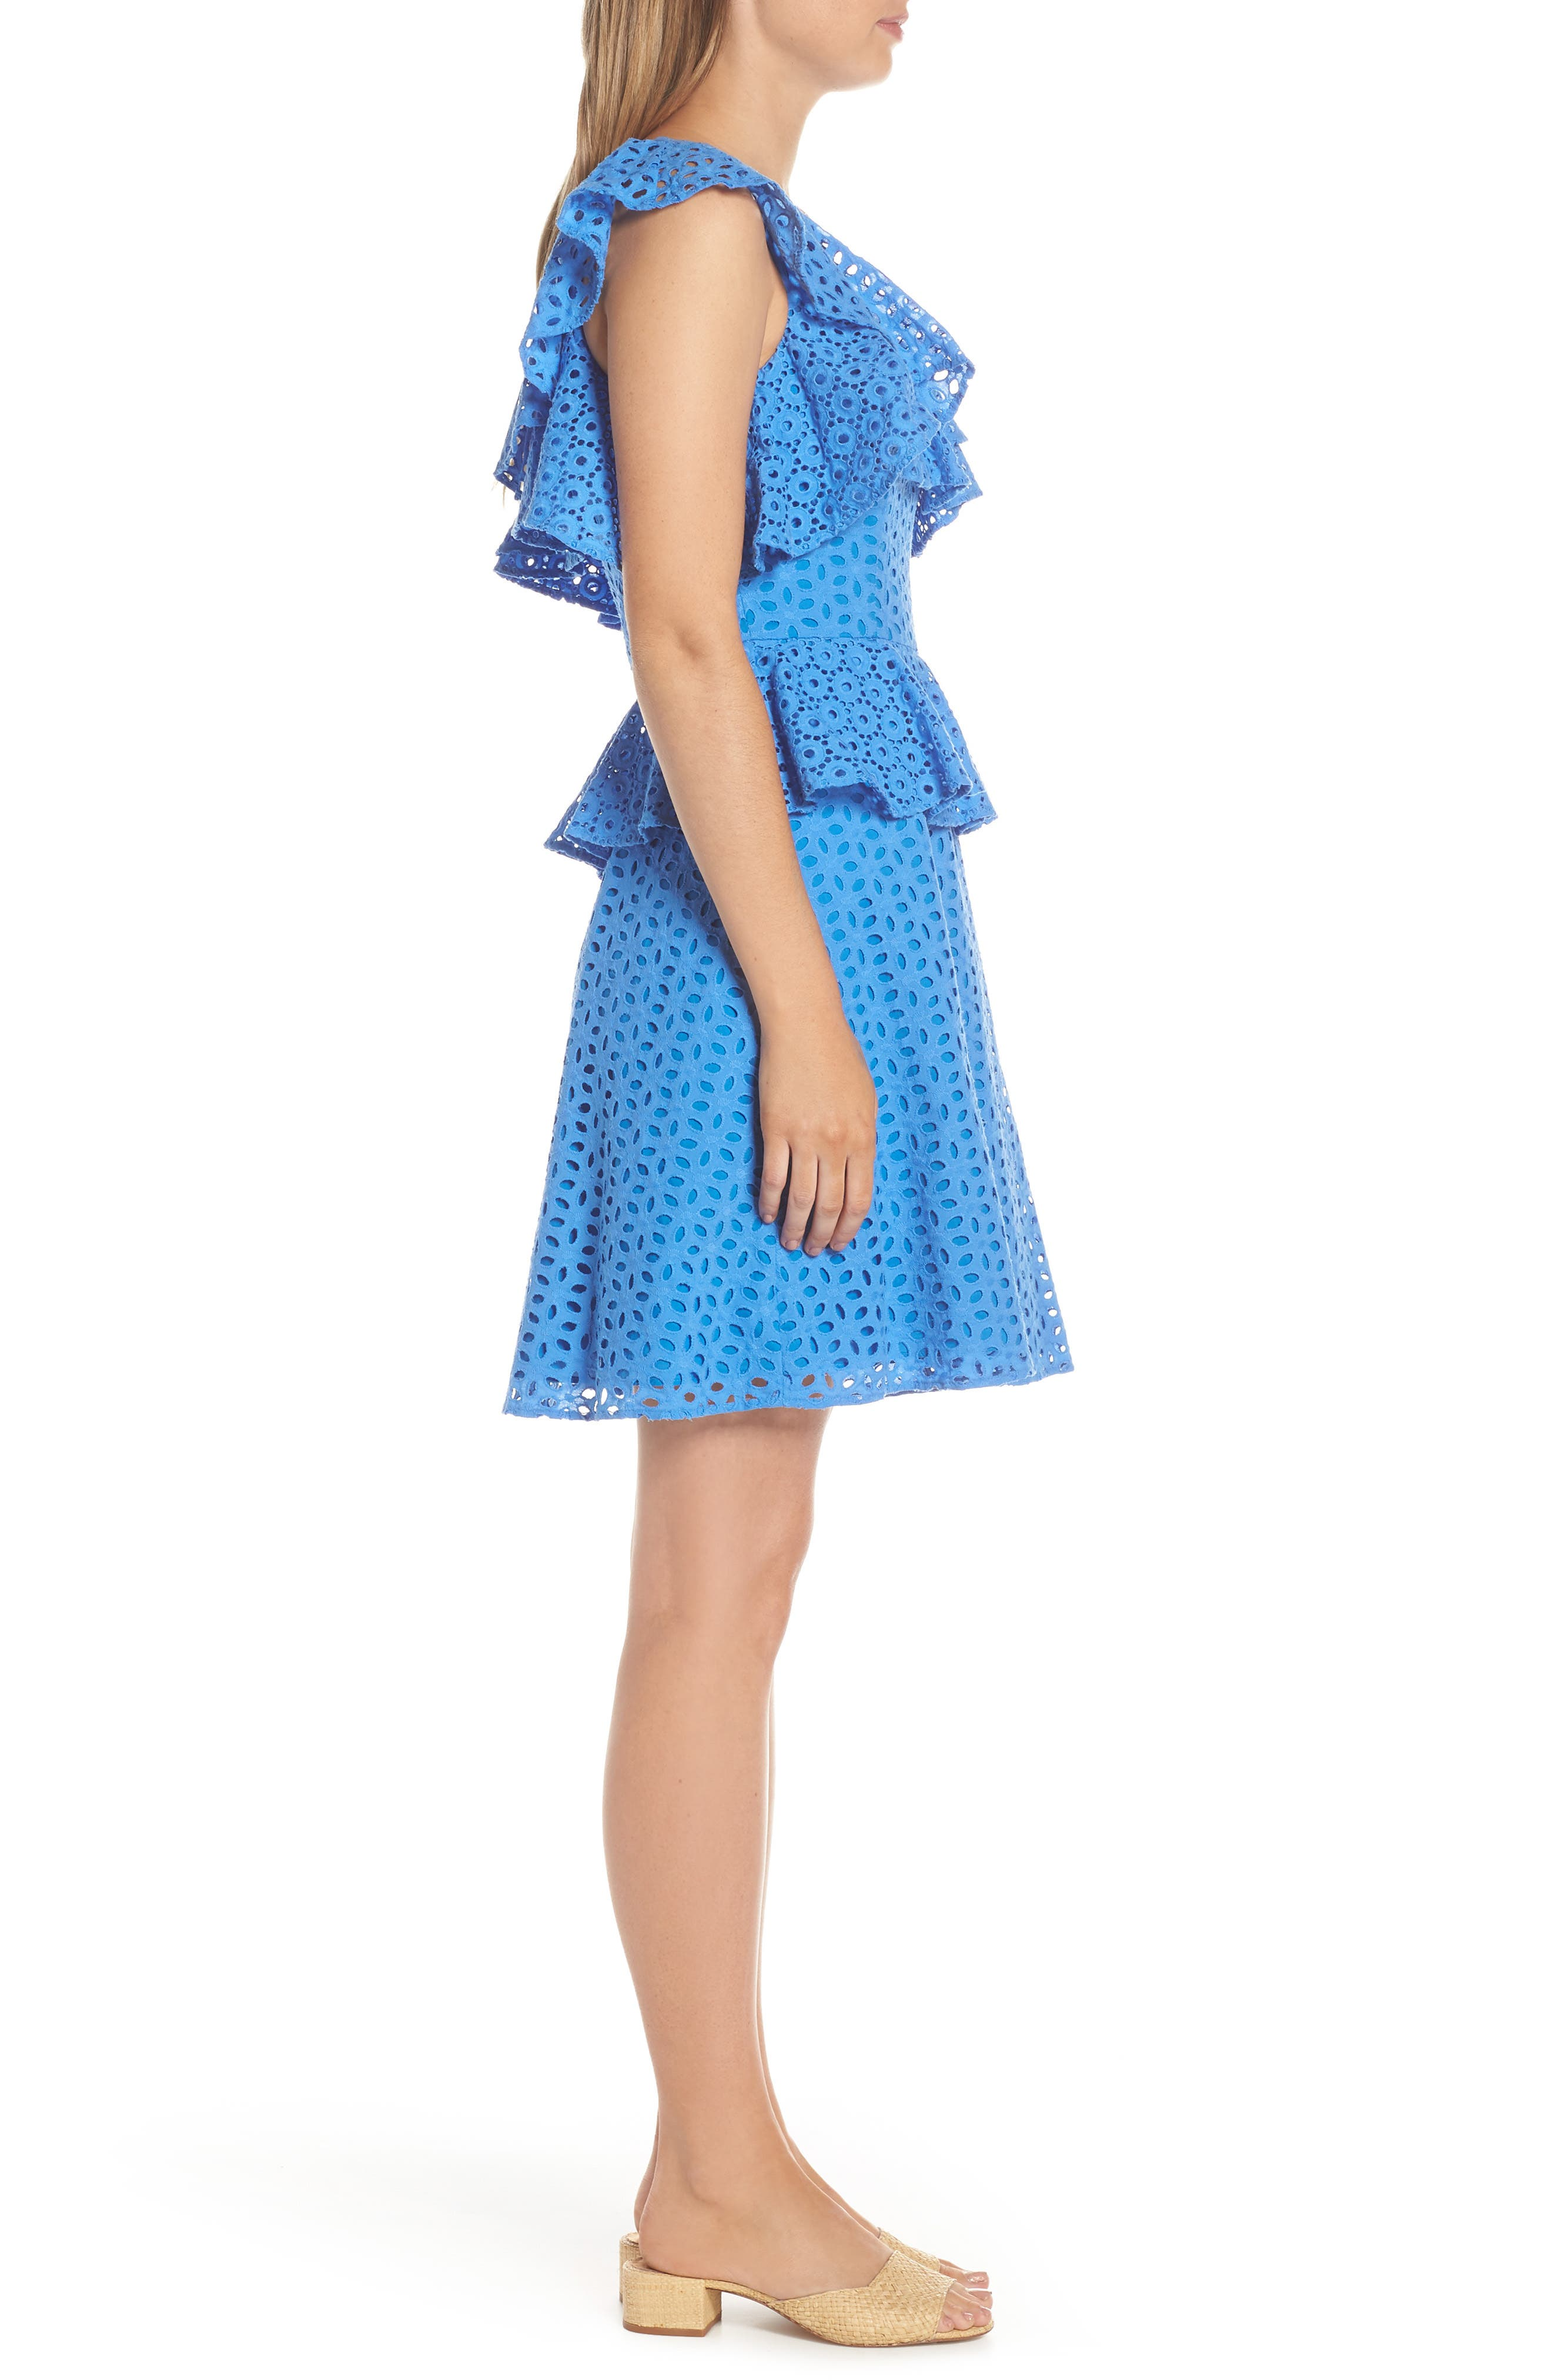 LILLY PULITZER<SUP>®</SUP>, Josey Eyelet One-Shoulder Dress, Alternate thumbnail 3, color, COASTAL BLUE OVAL FLOWER